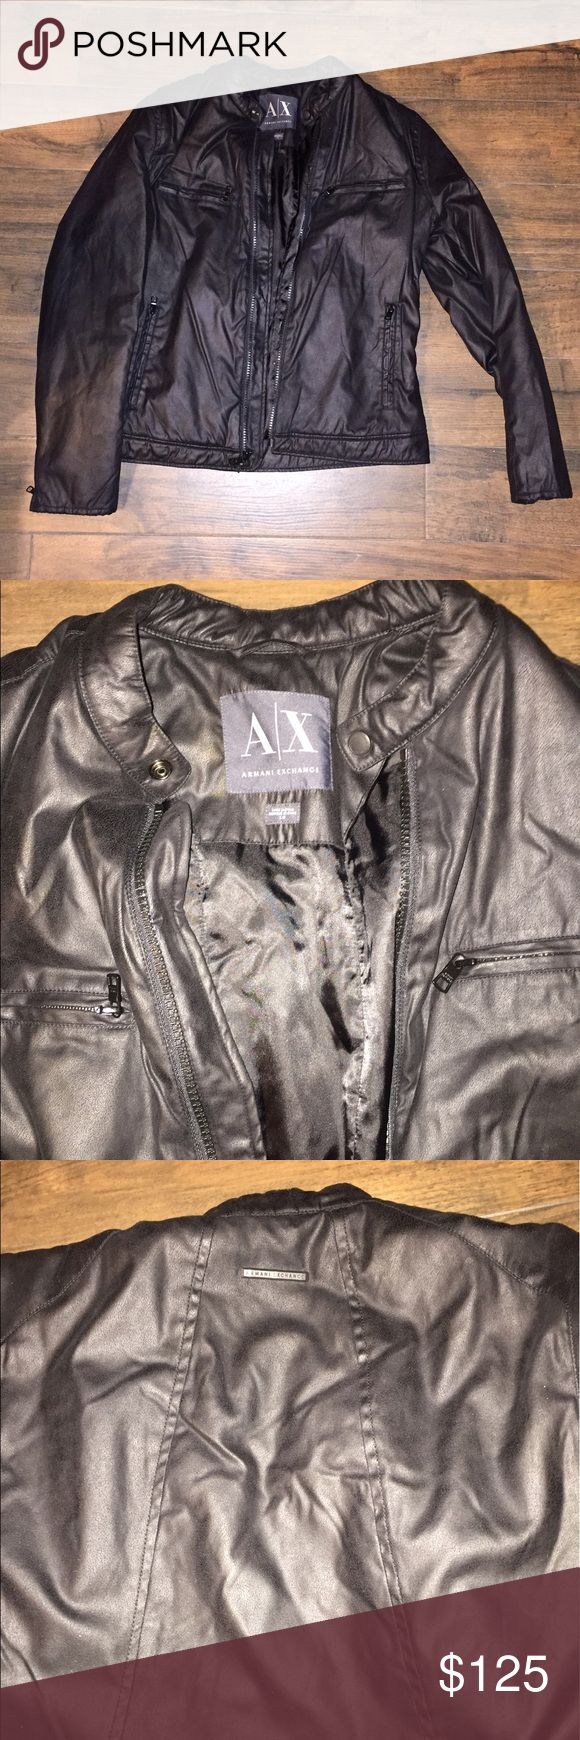 Armani Exchange A|X men's faux leather jacket L Never worn.  Size large.  Faux leather soft fabric jacket. A/X Armani Exchange Jackets & Coats